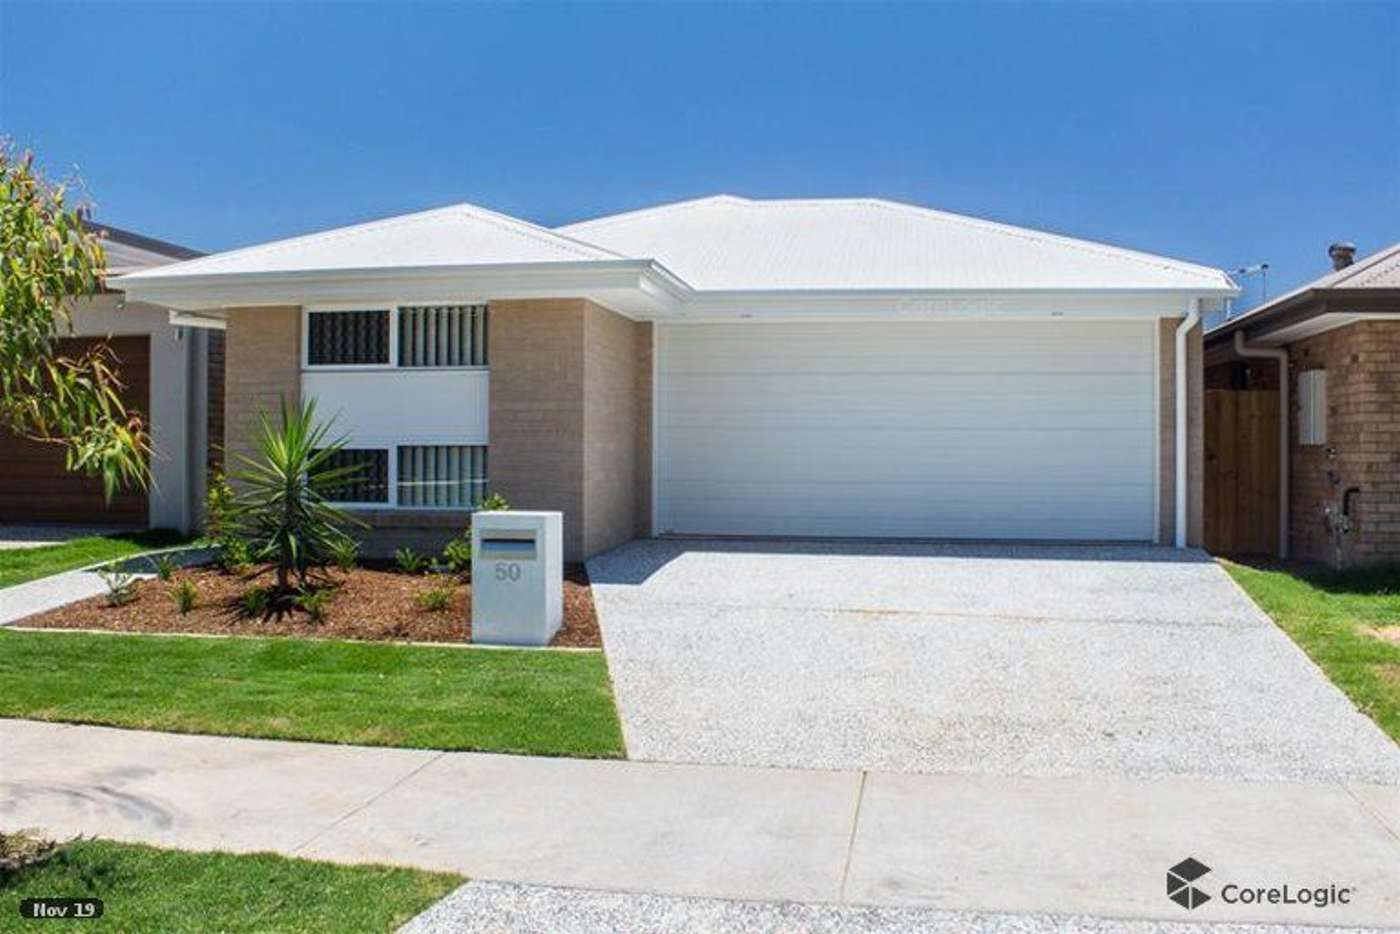 Main view of Homely house listing, 50 Darlington Drive, Yarrabilba QLD 4207